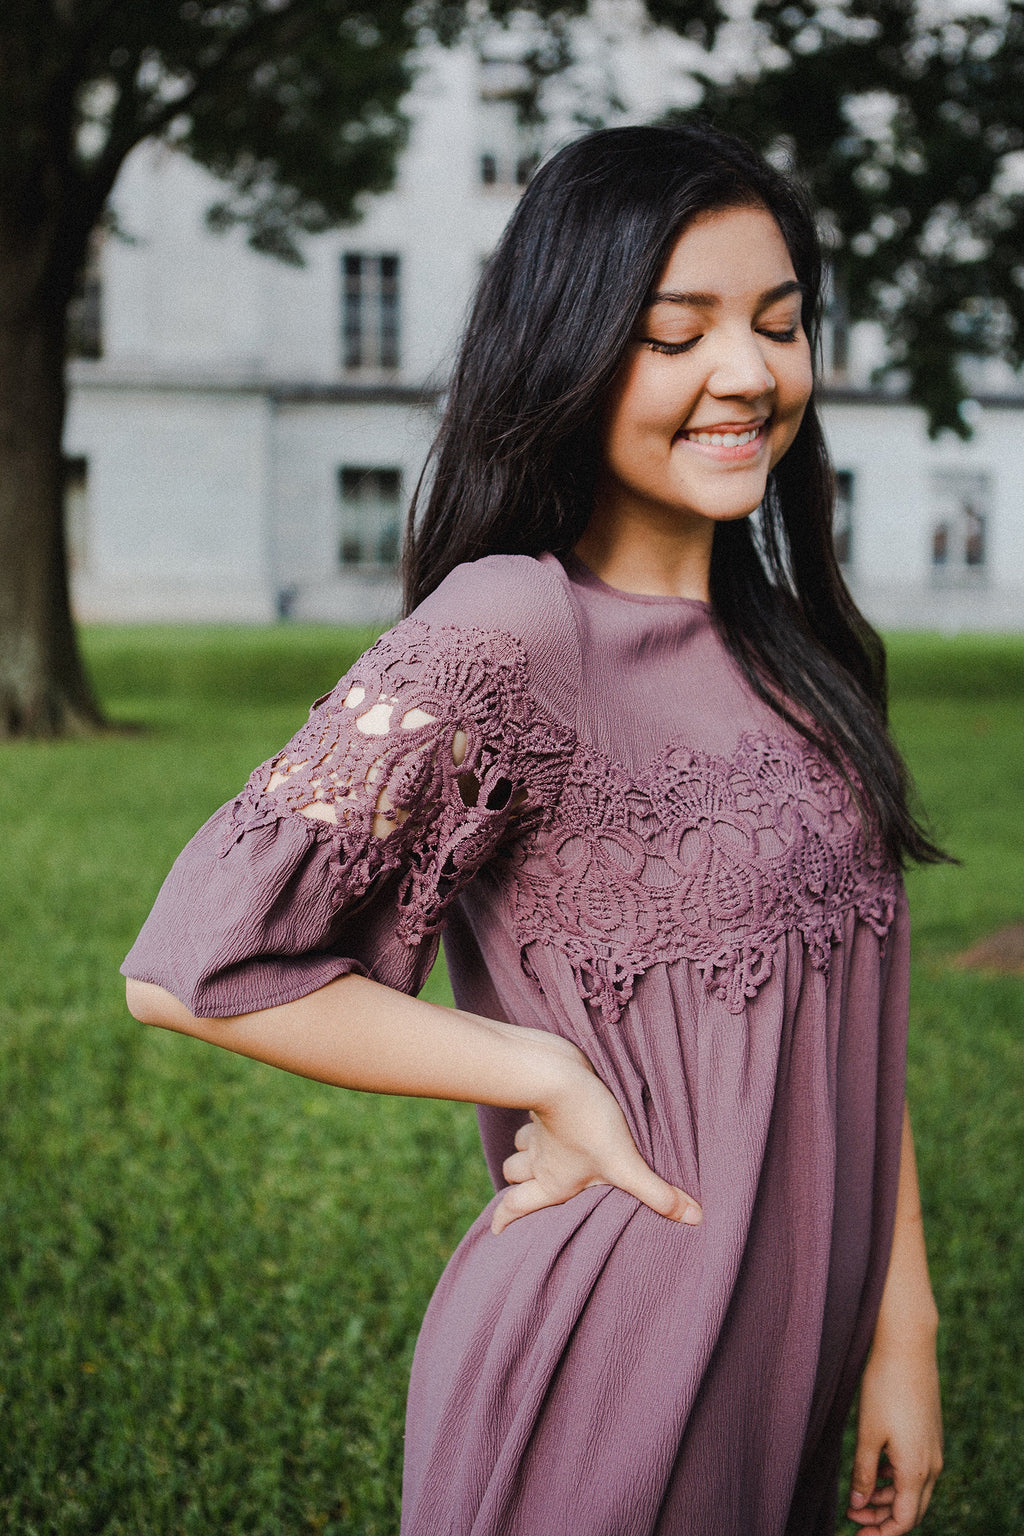 Aubrey Lace Dress in Plum